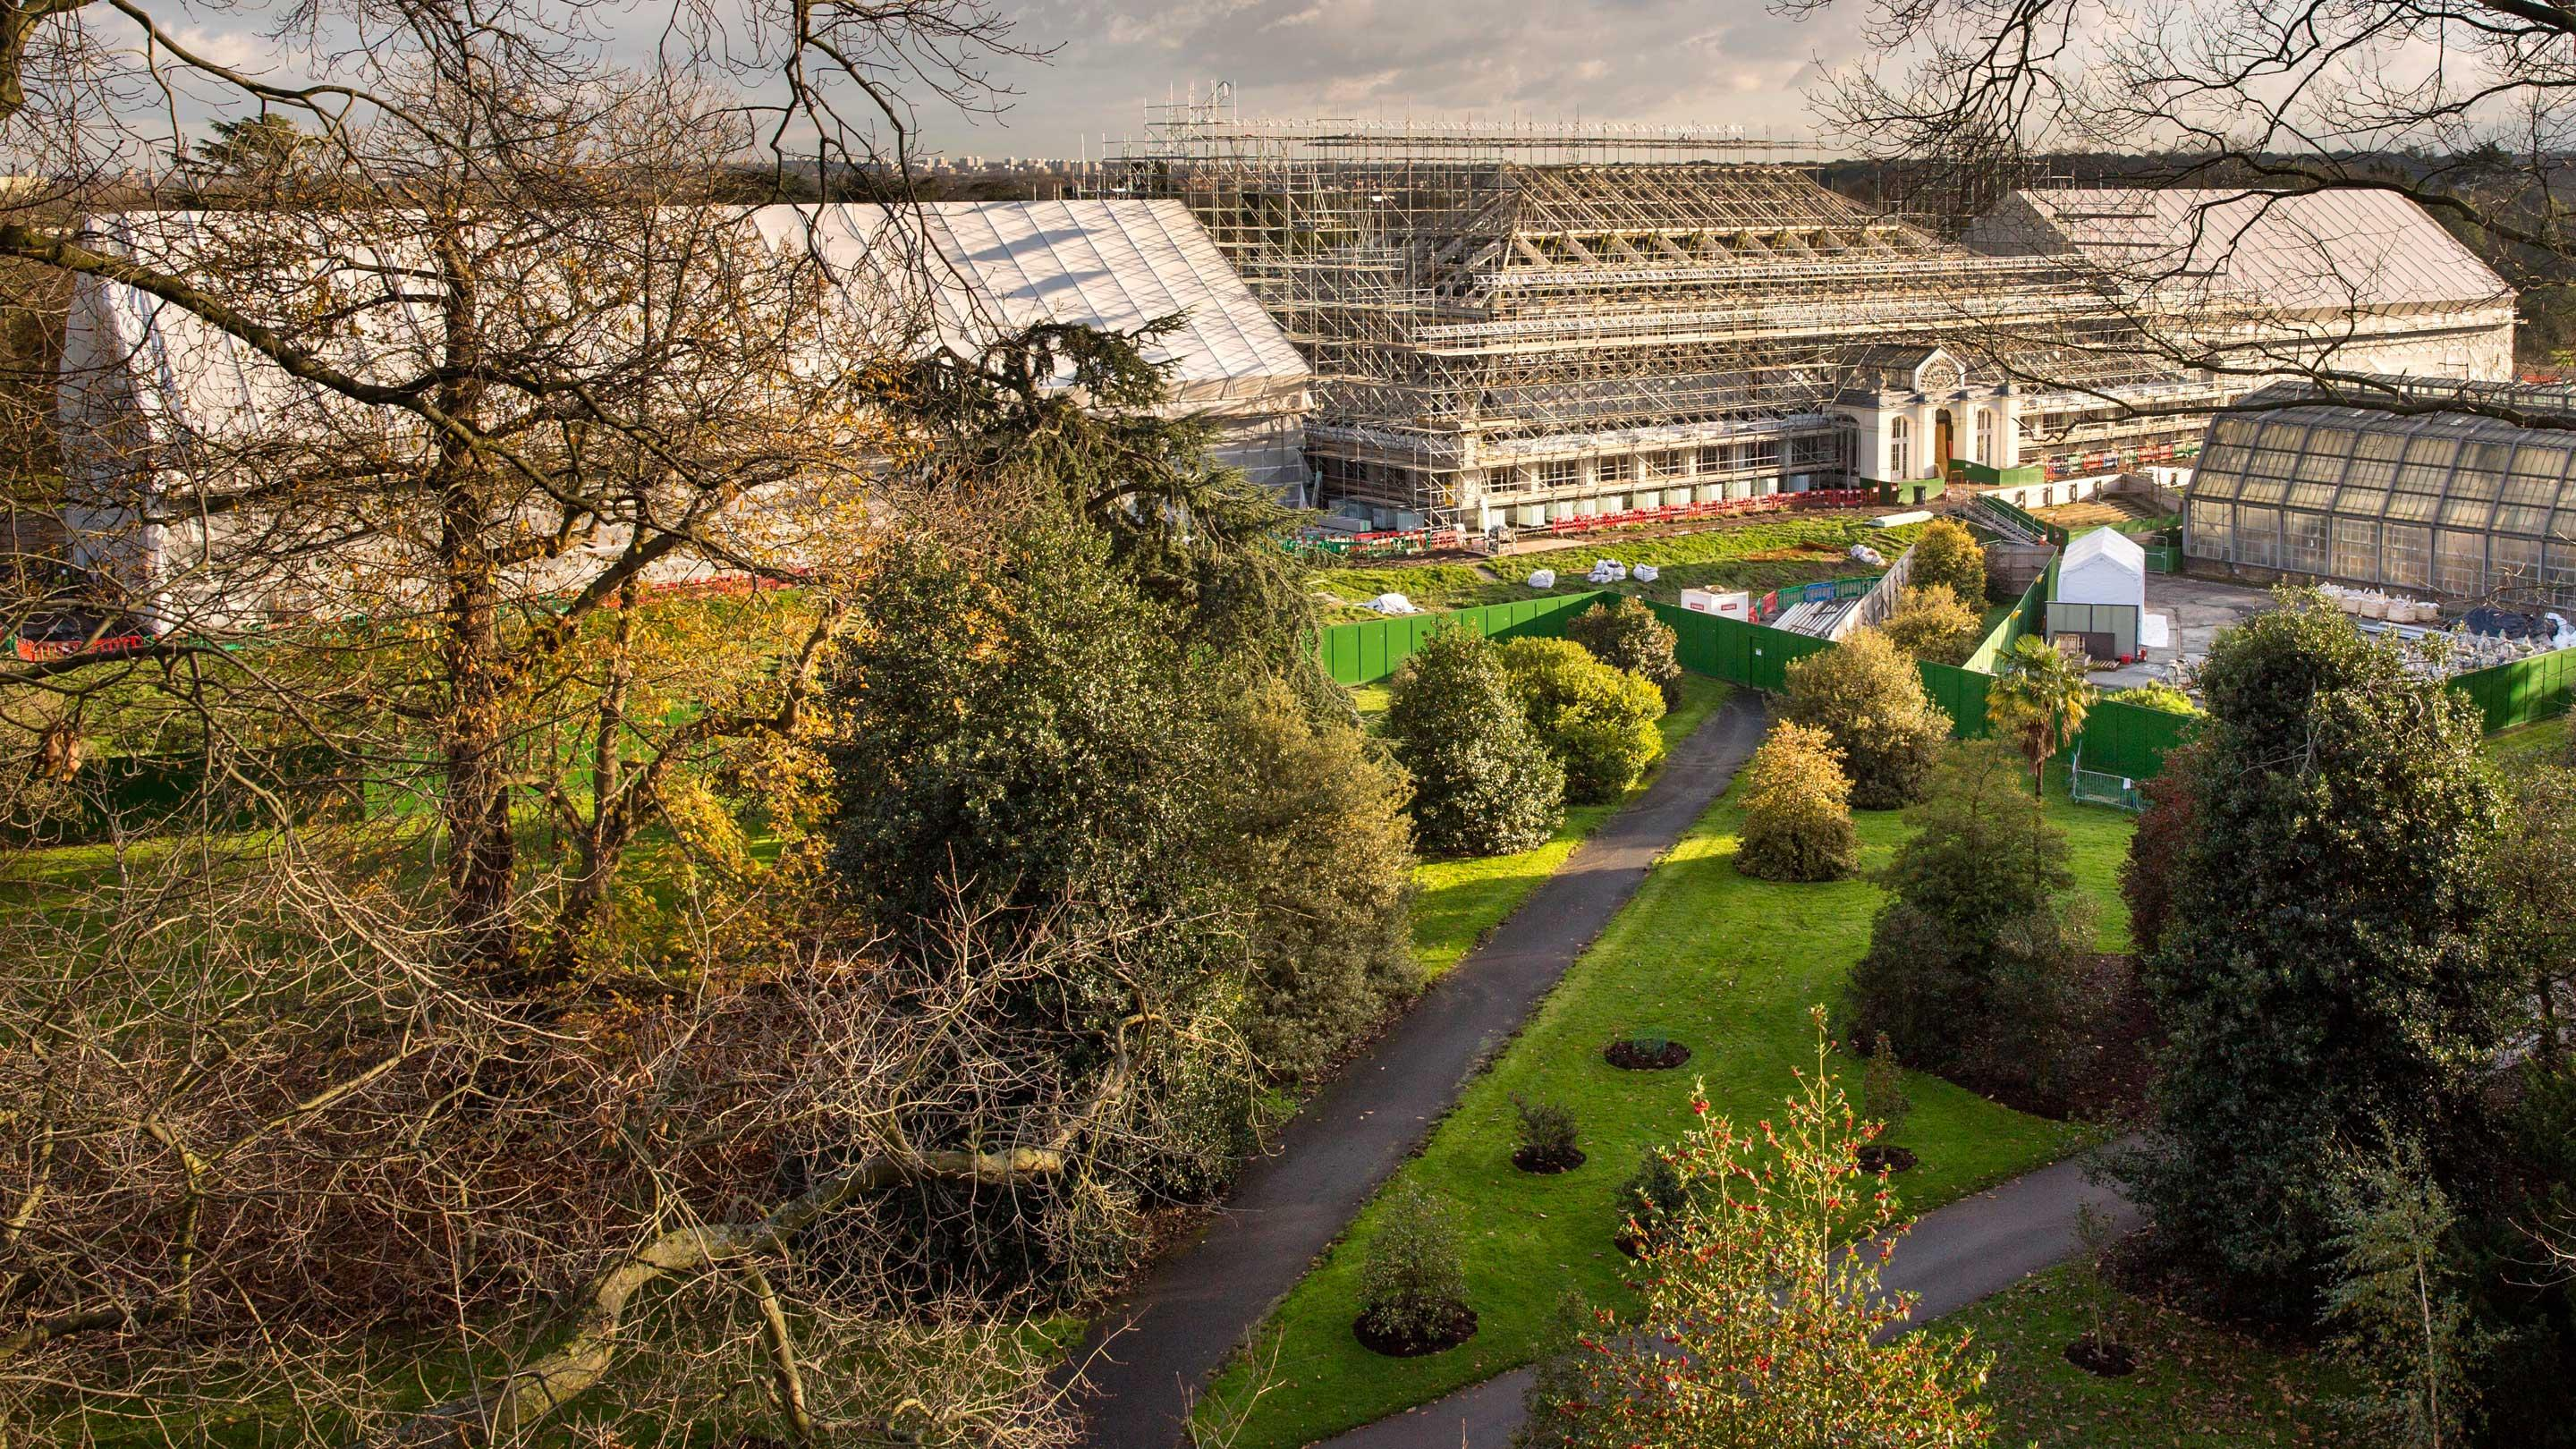 View of the Temperate House under restoration